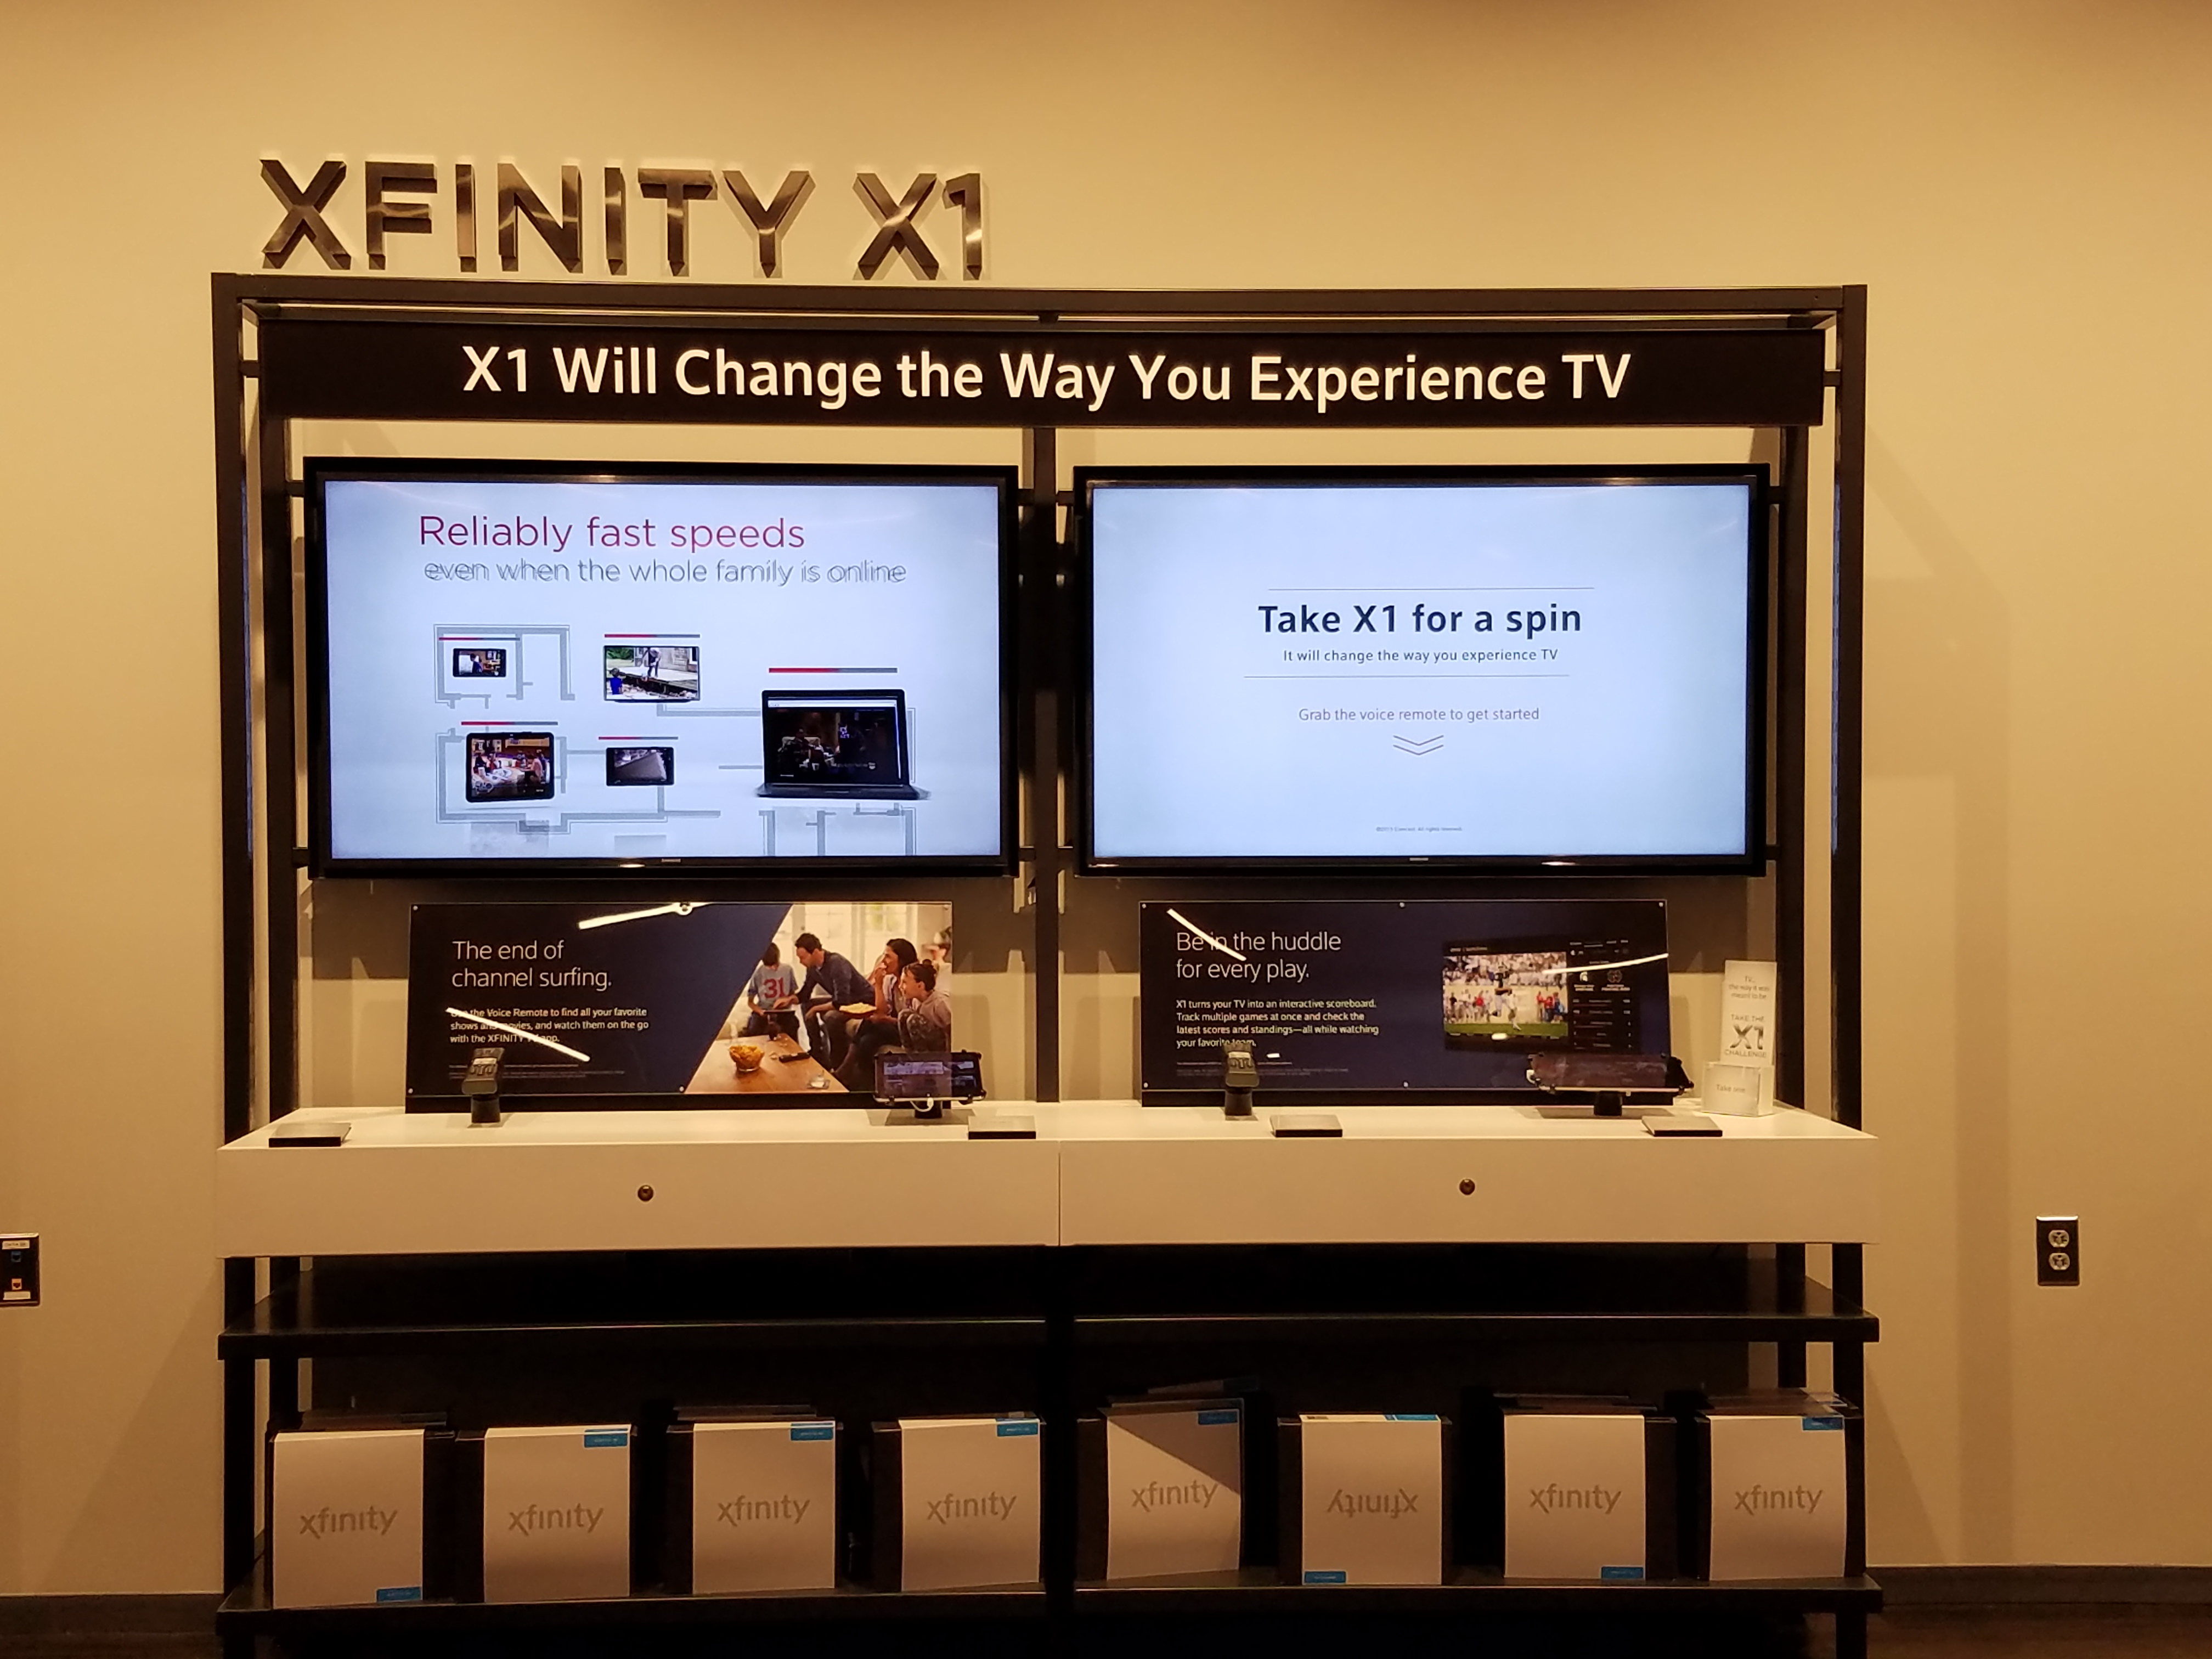 Xfinity offers the new X1